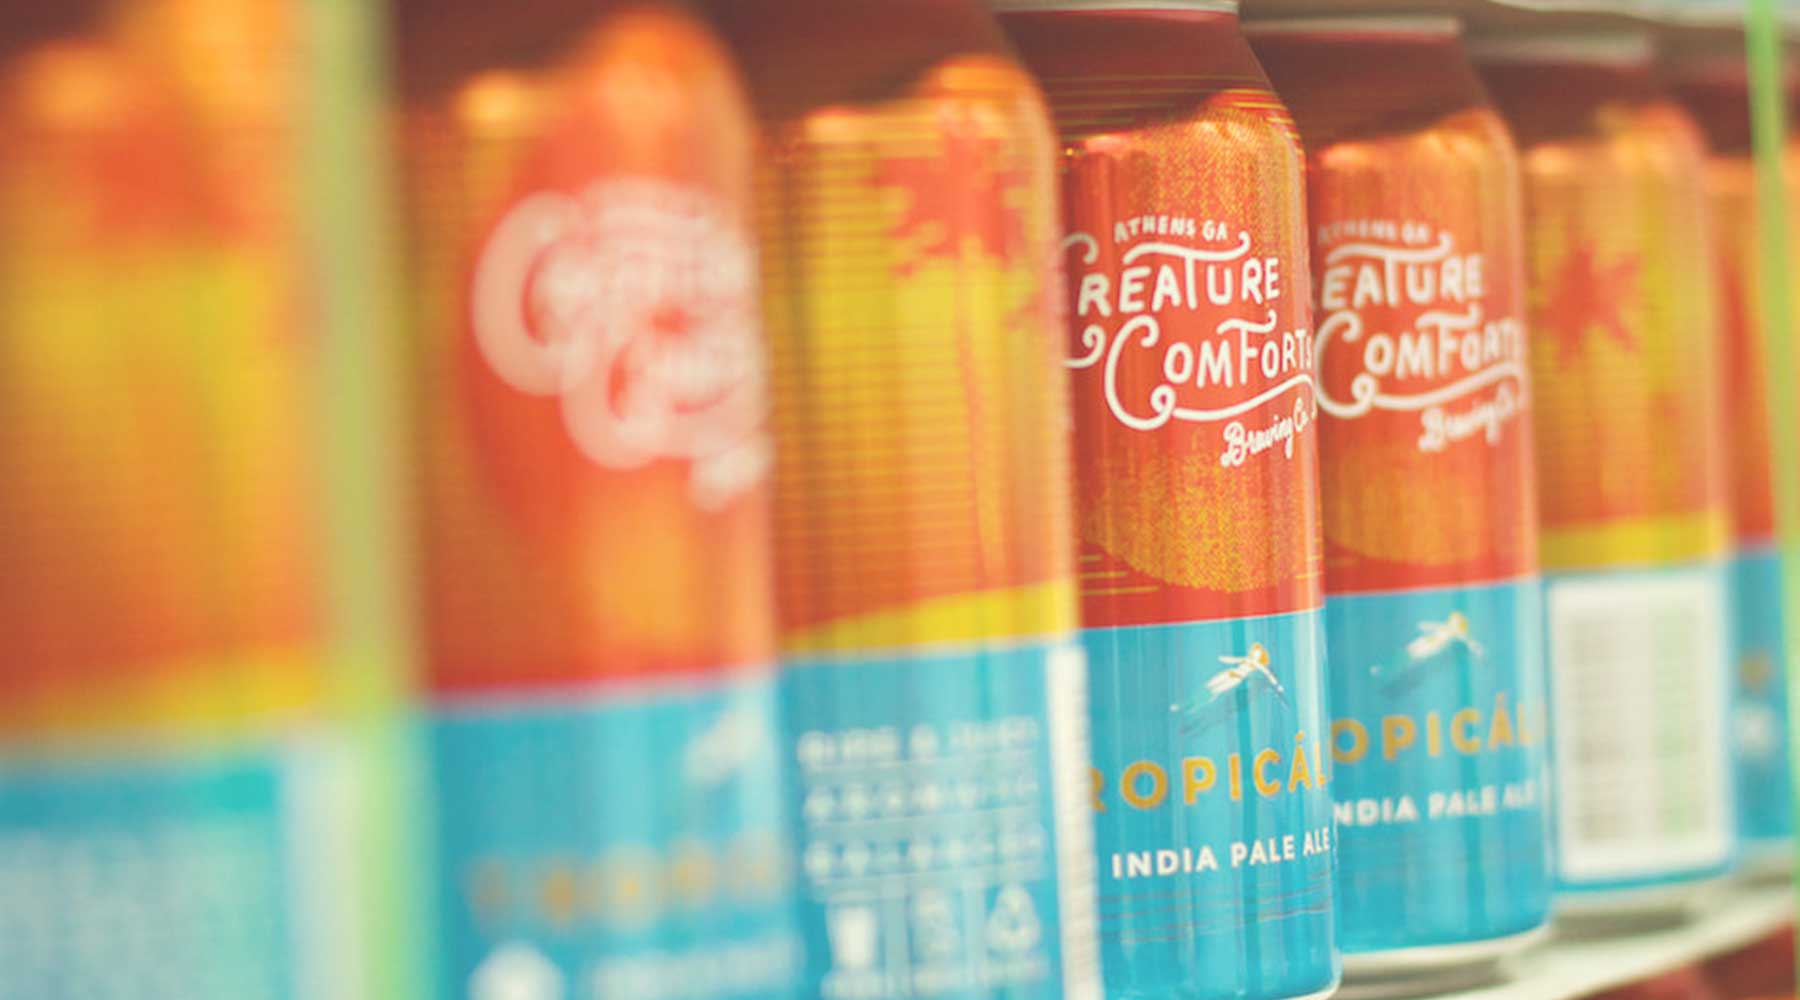 Creature Comforts Brewing Co. | Just Wine